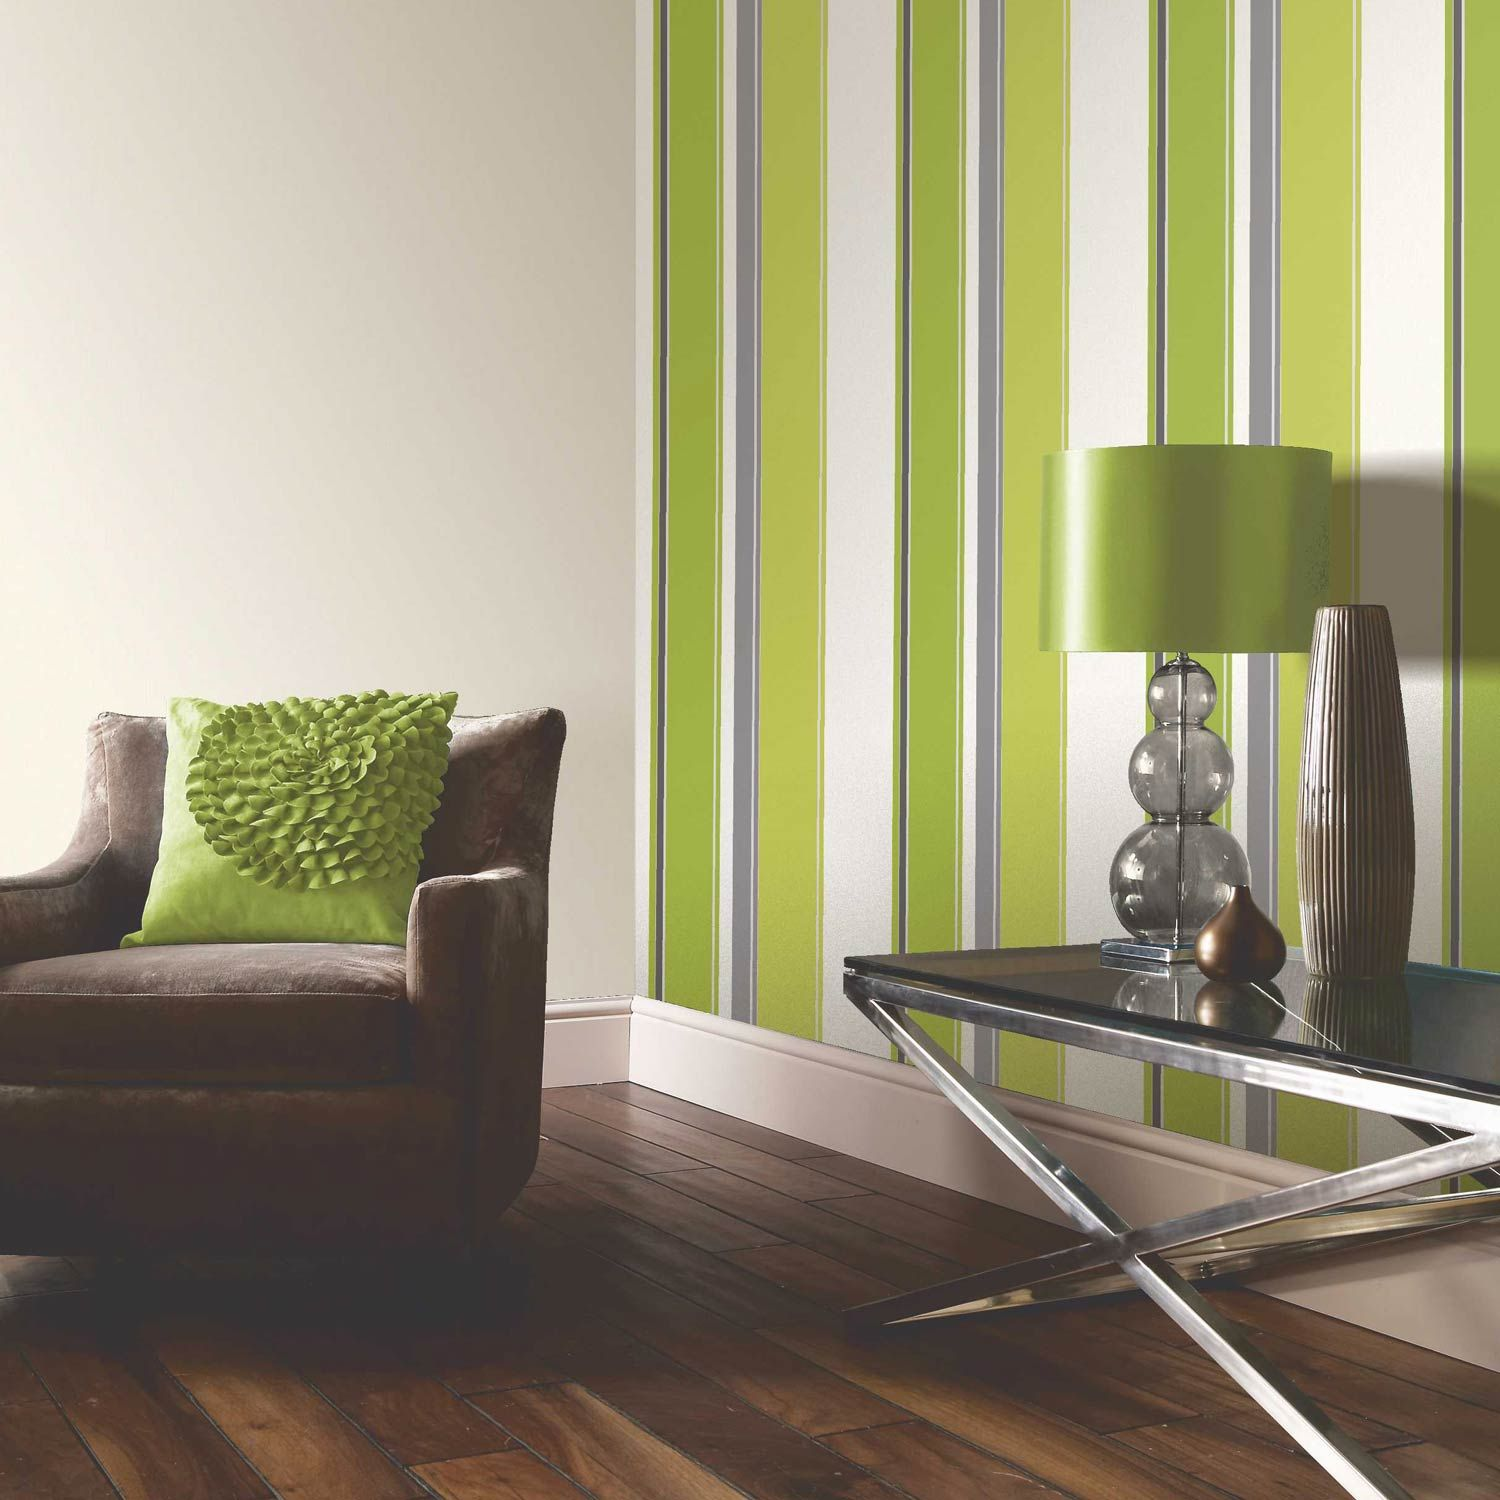 Buy The Carina Lime Green Striped Wallpaper At The Range Green